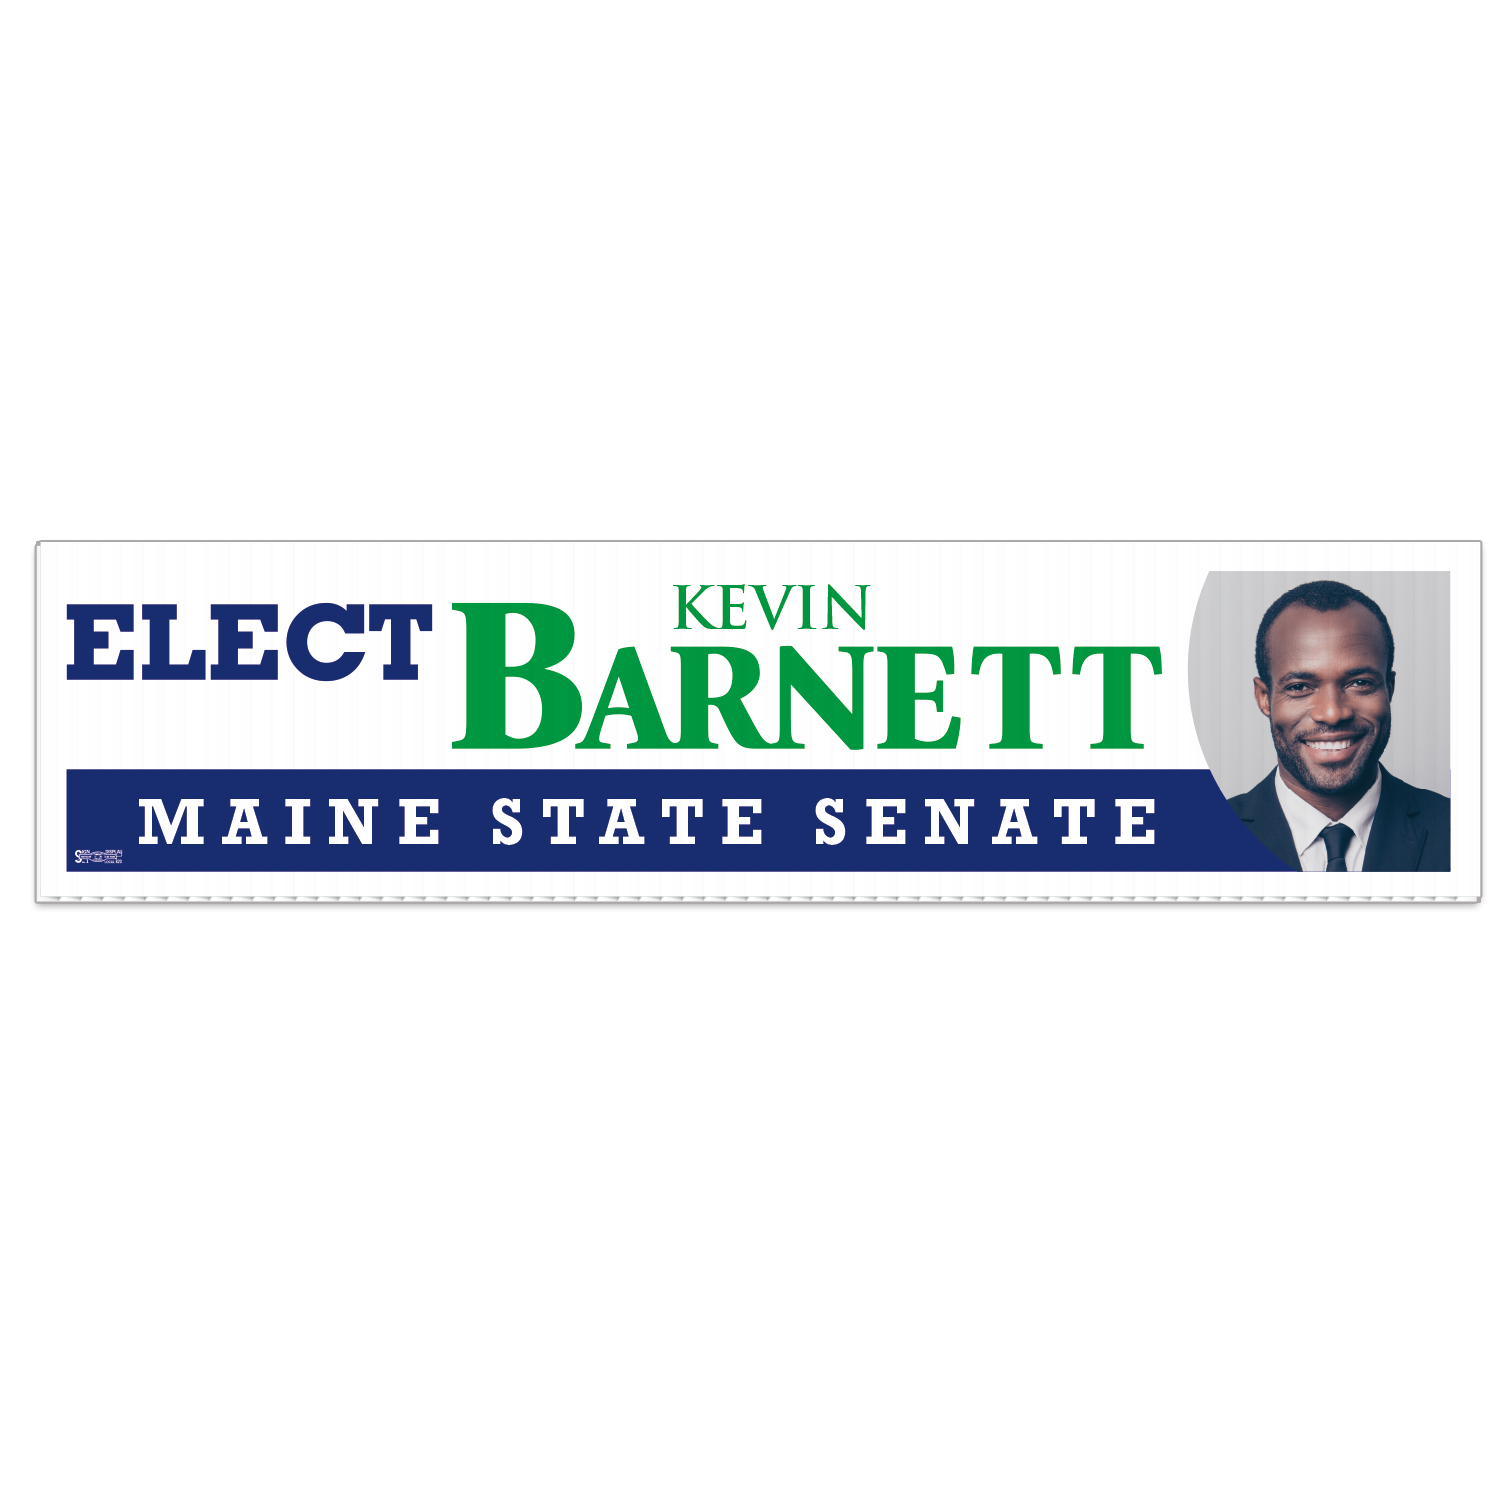 https://www.sswprinting.com/images/products_gallery_images/16241_Elect-Kevin-Barnett-for-State-Senate_hi-res.png